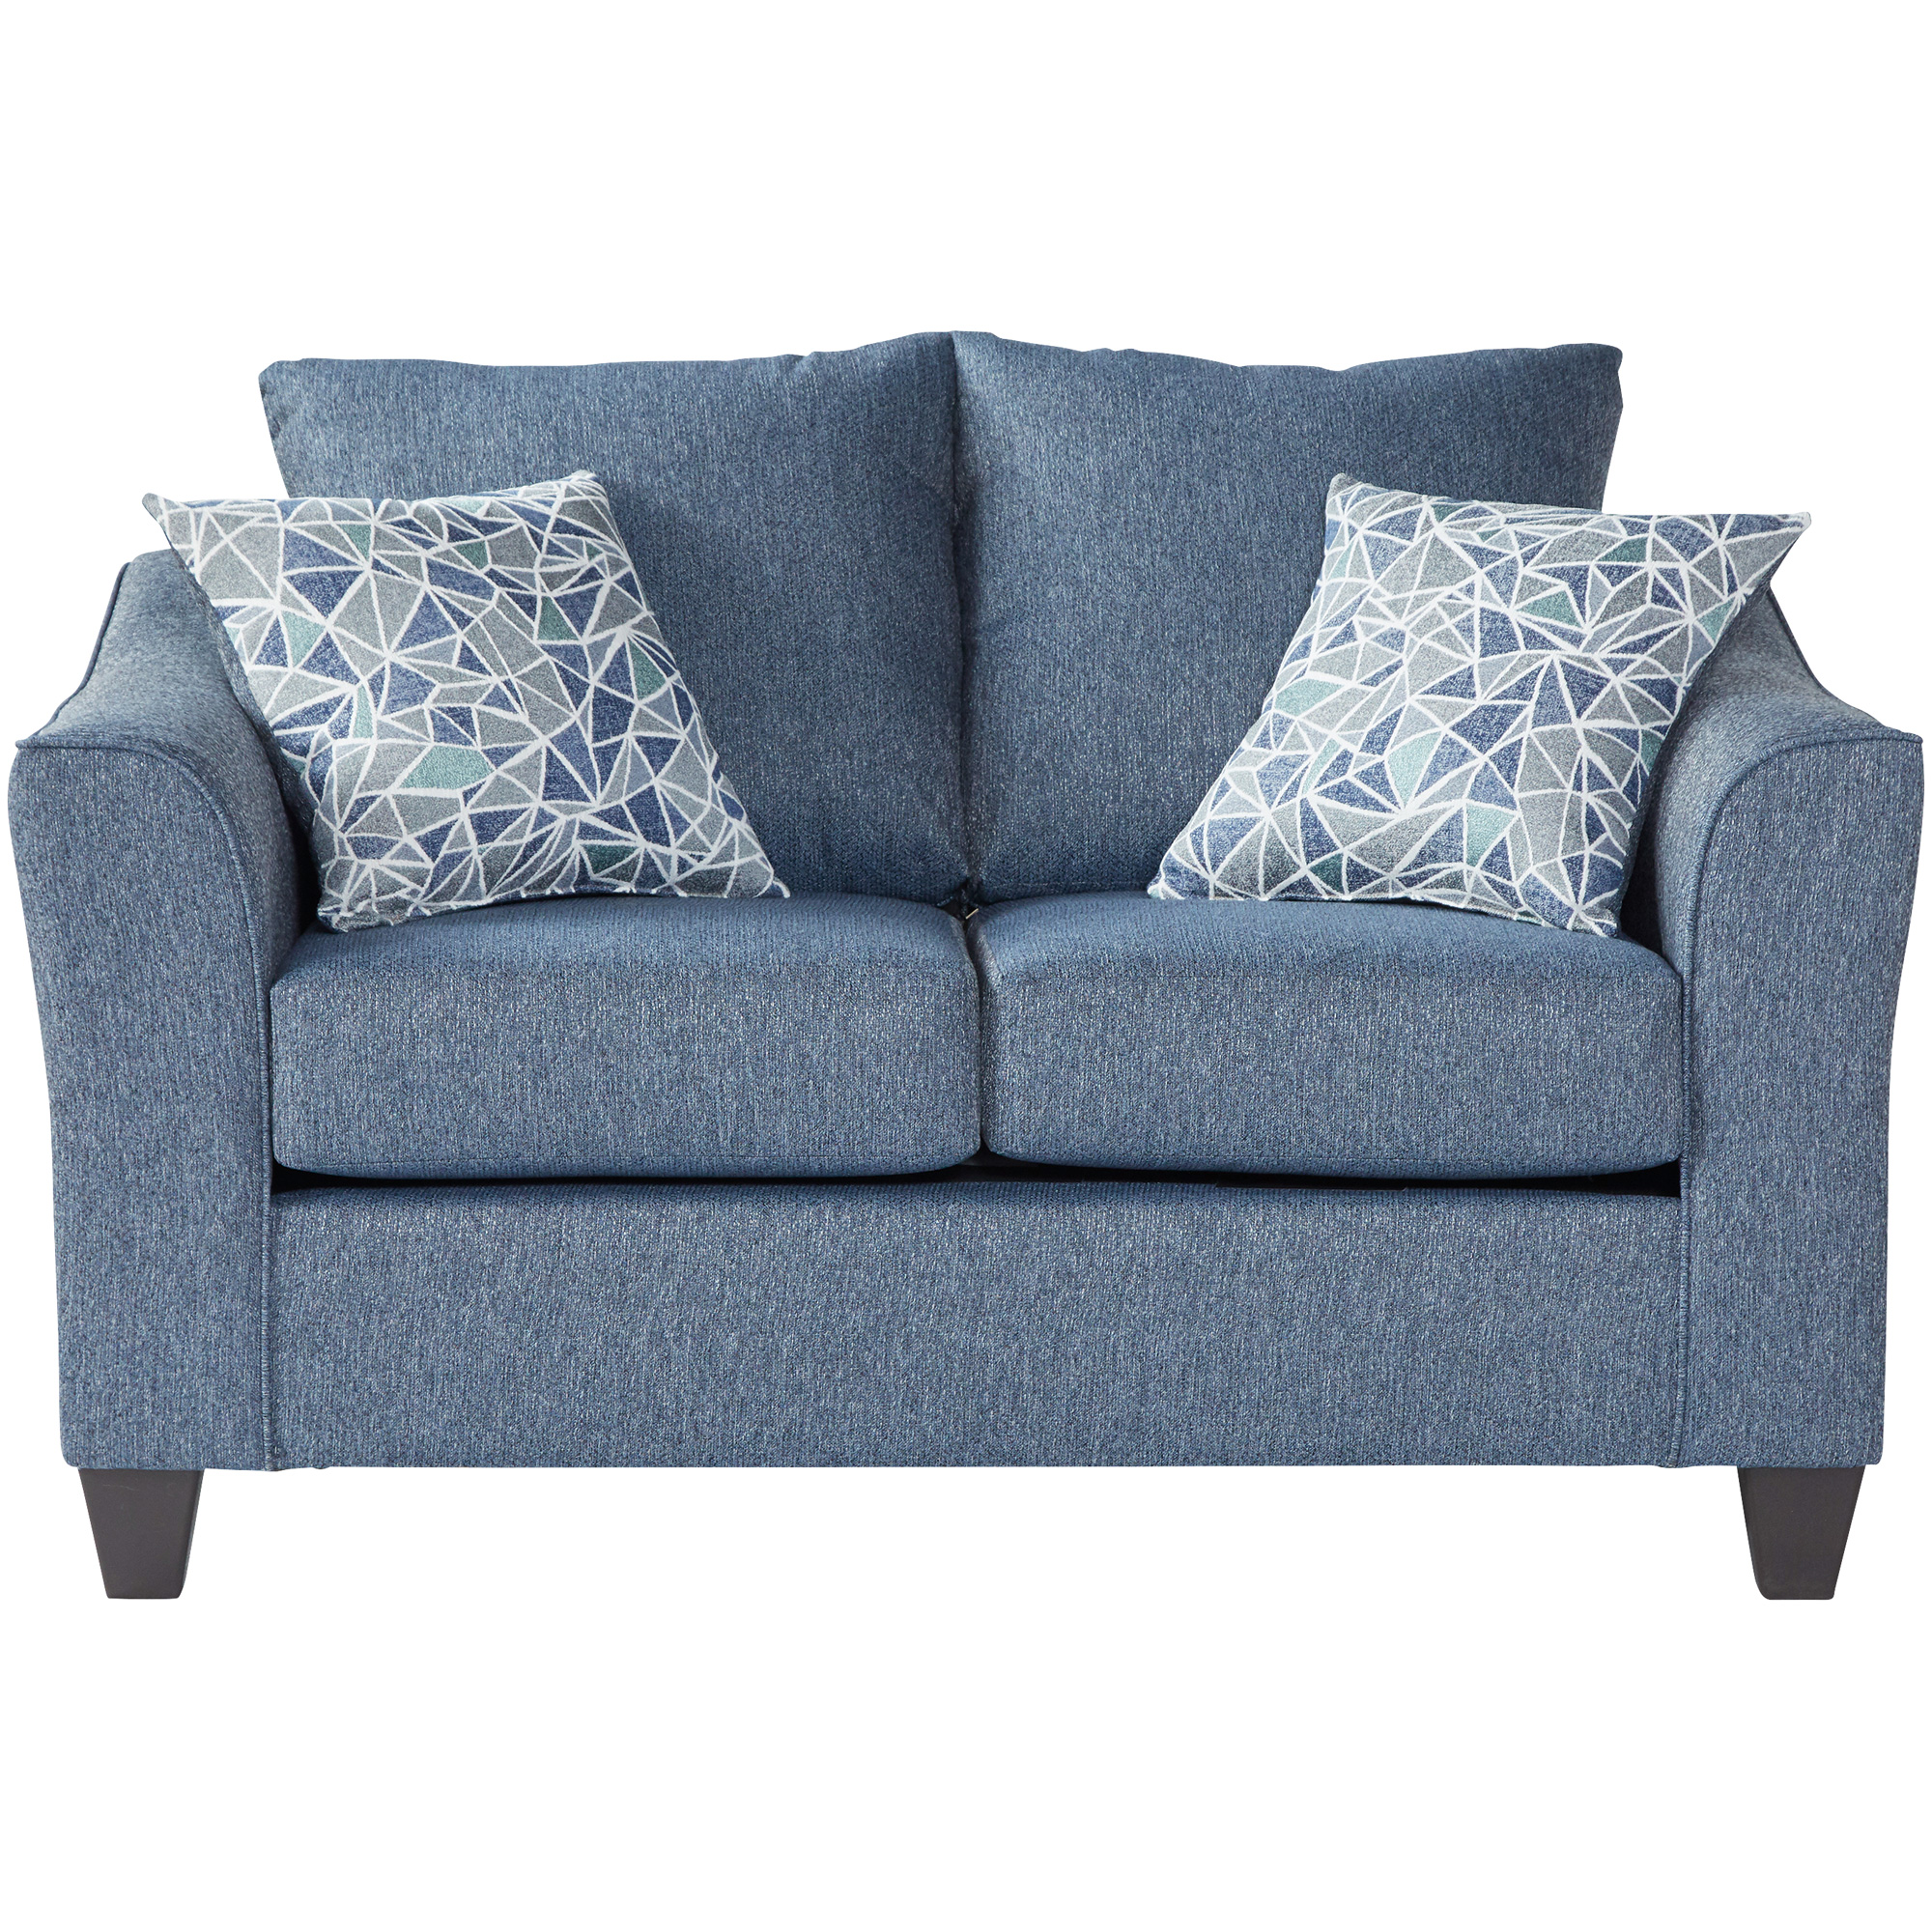 Serta Upholstery By Hughes Furniture | Bolt Cobalt Loveseat Sofa